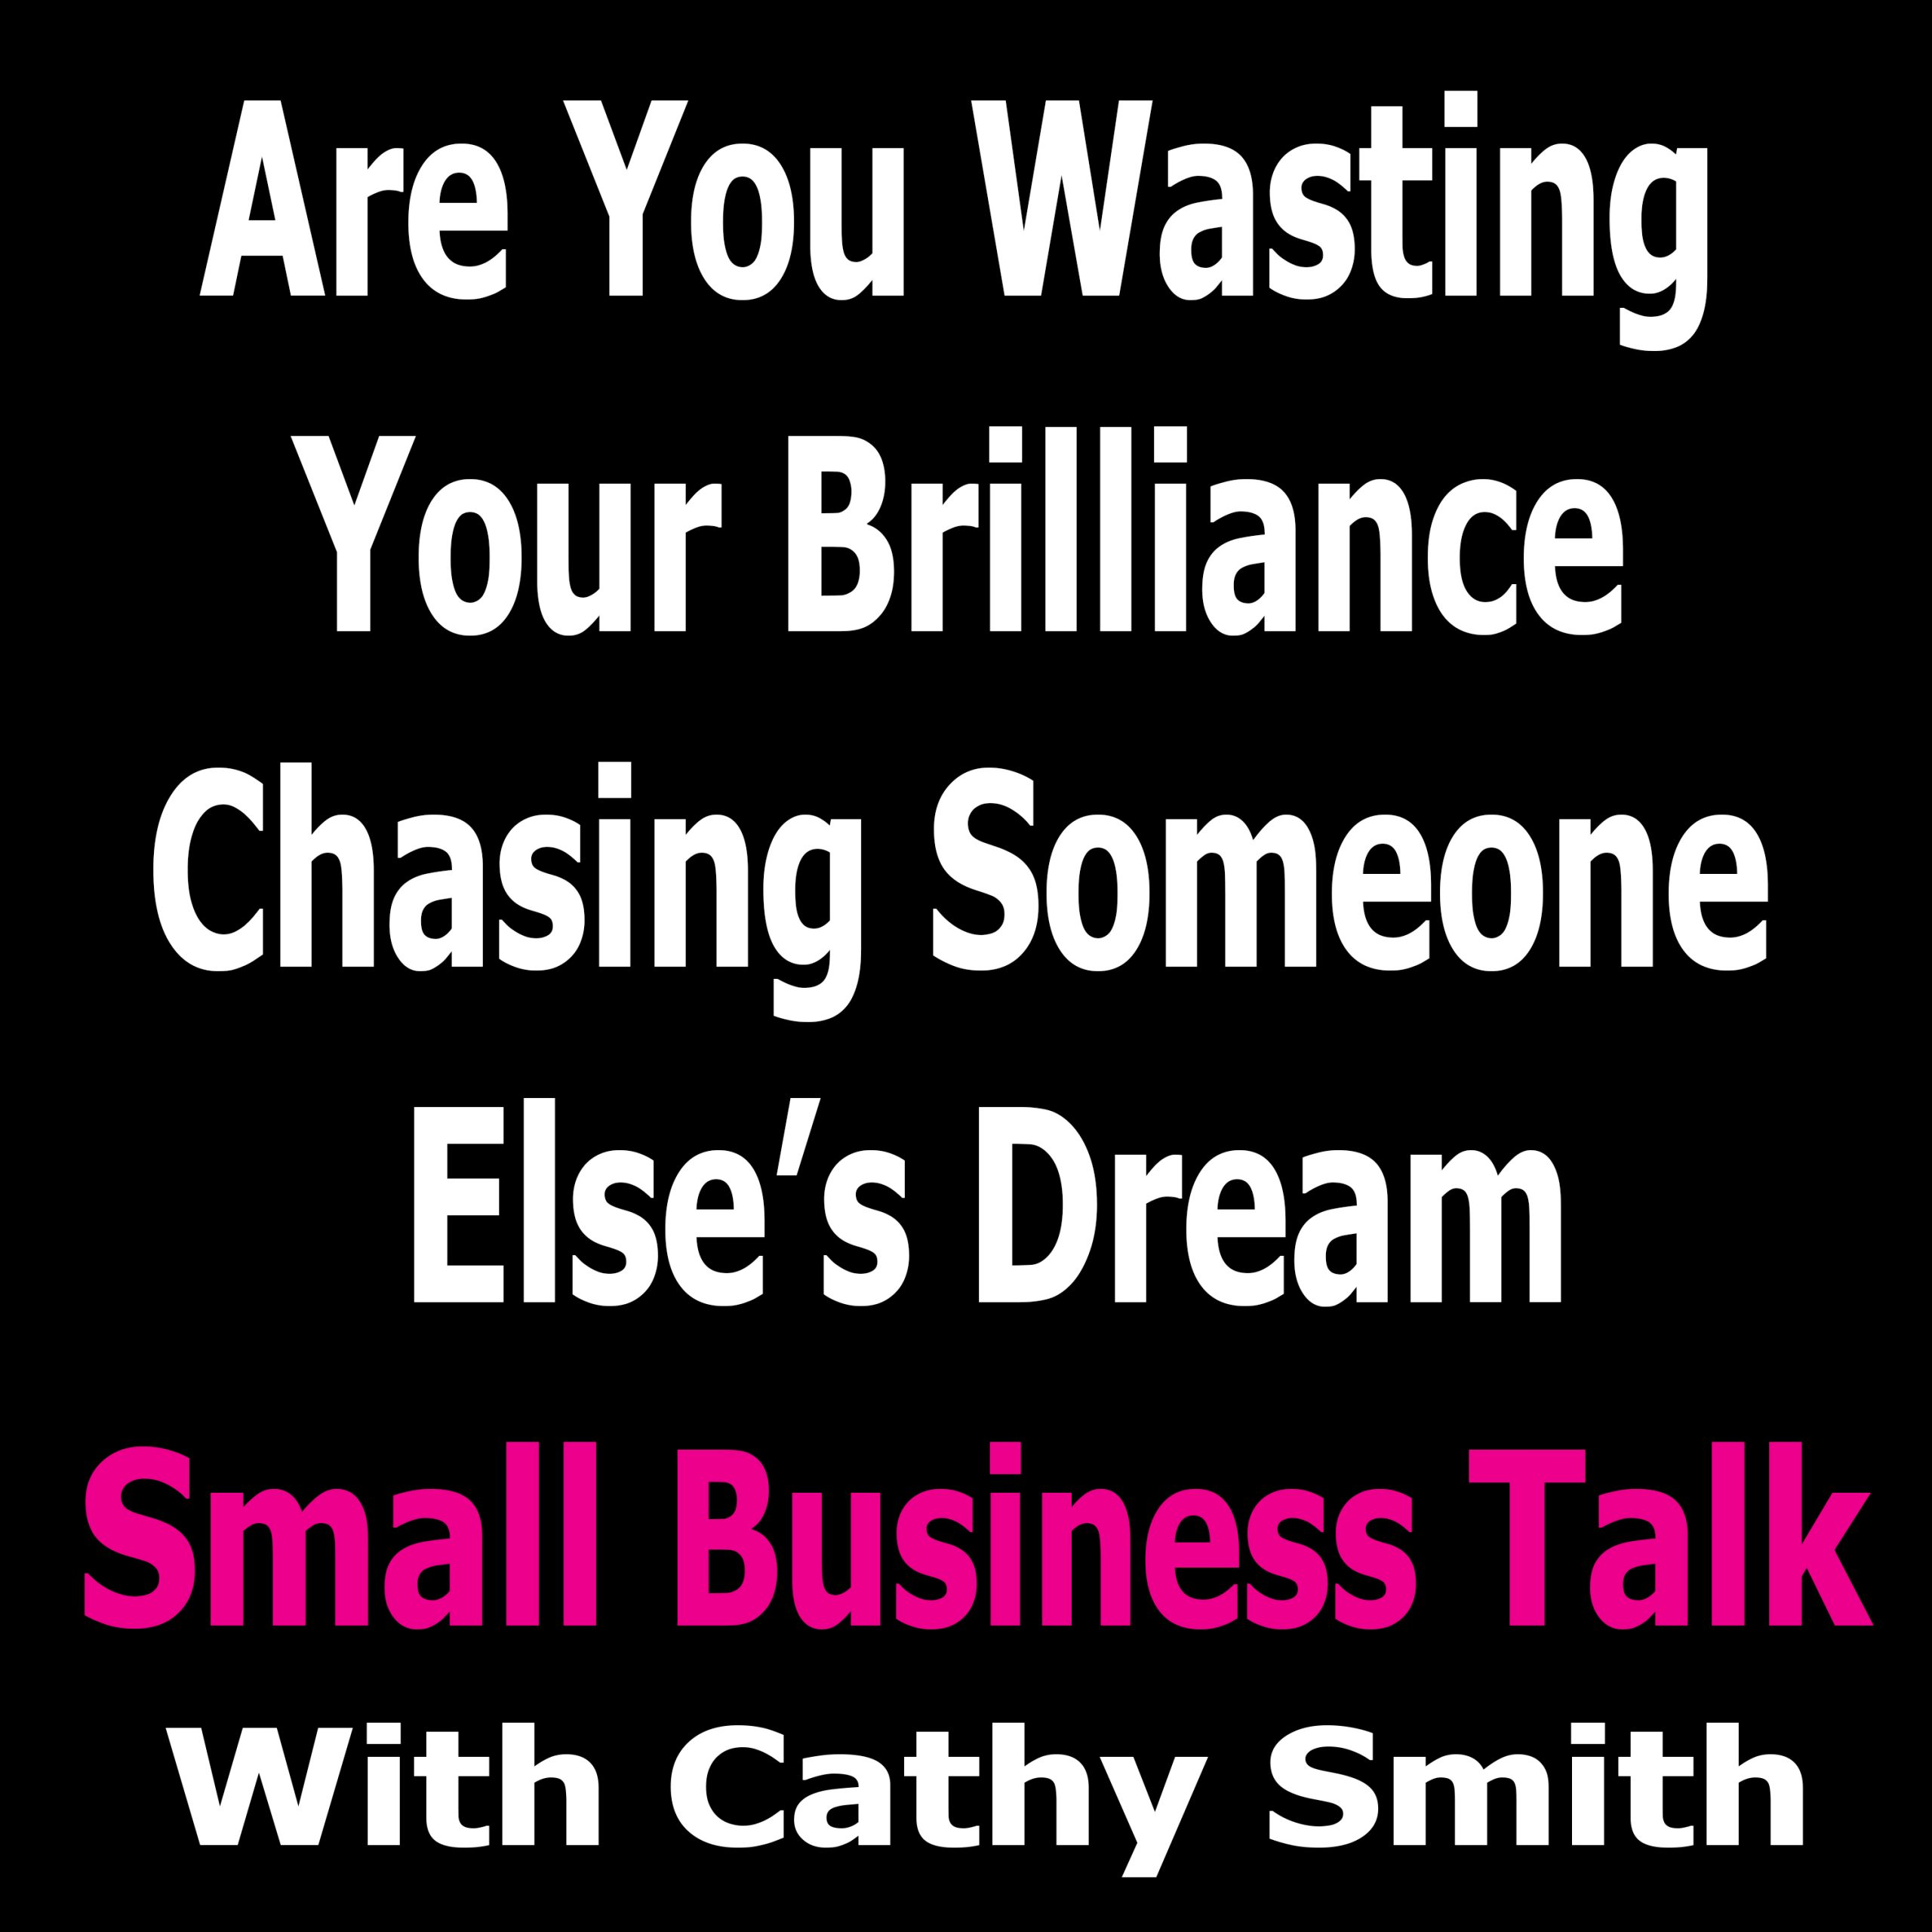 Are You Wasting Your Brilliance Chasing Someone Else's Dream?